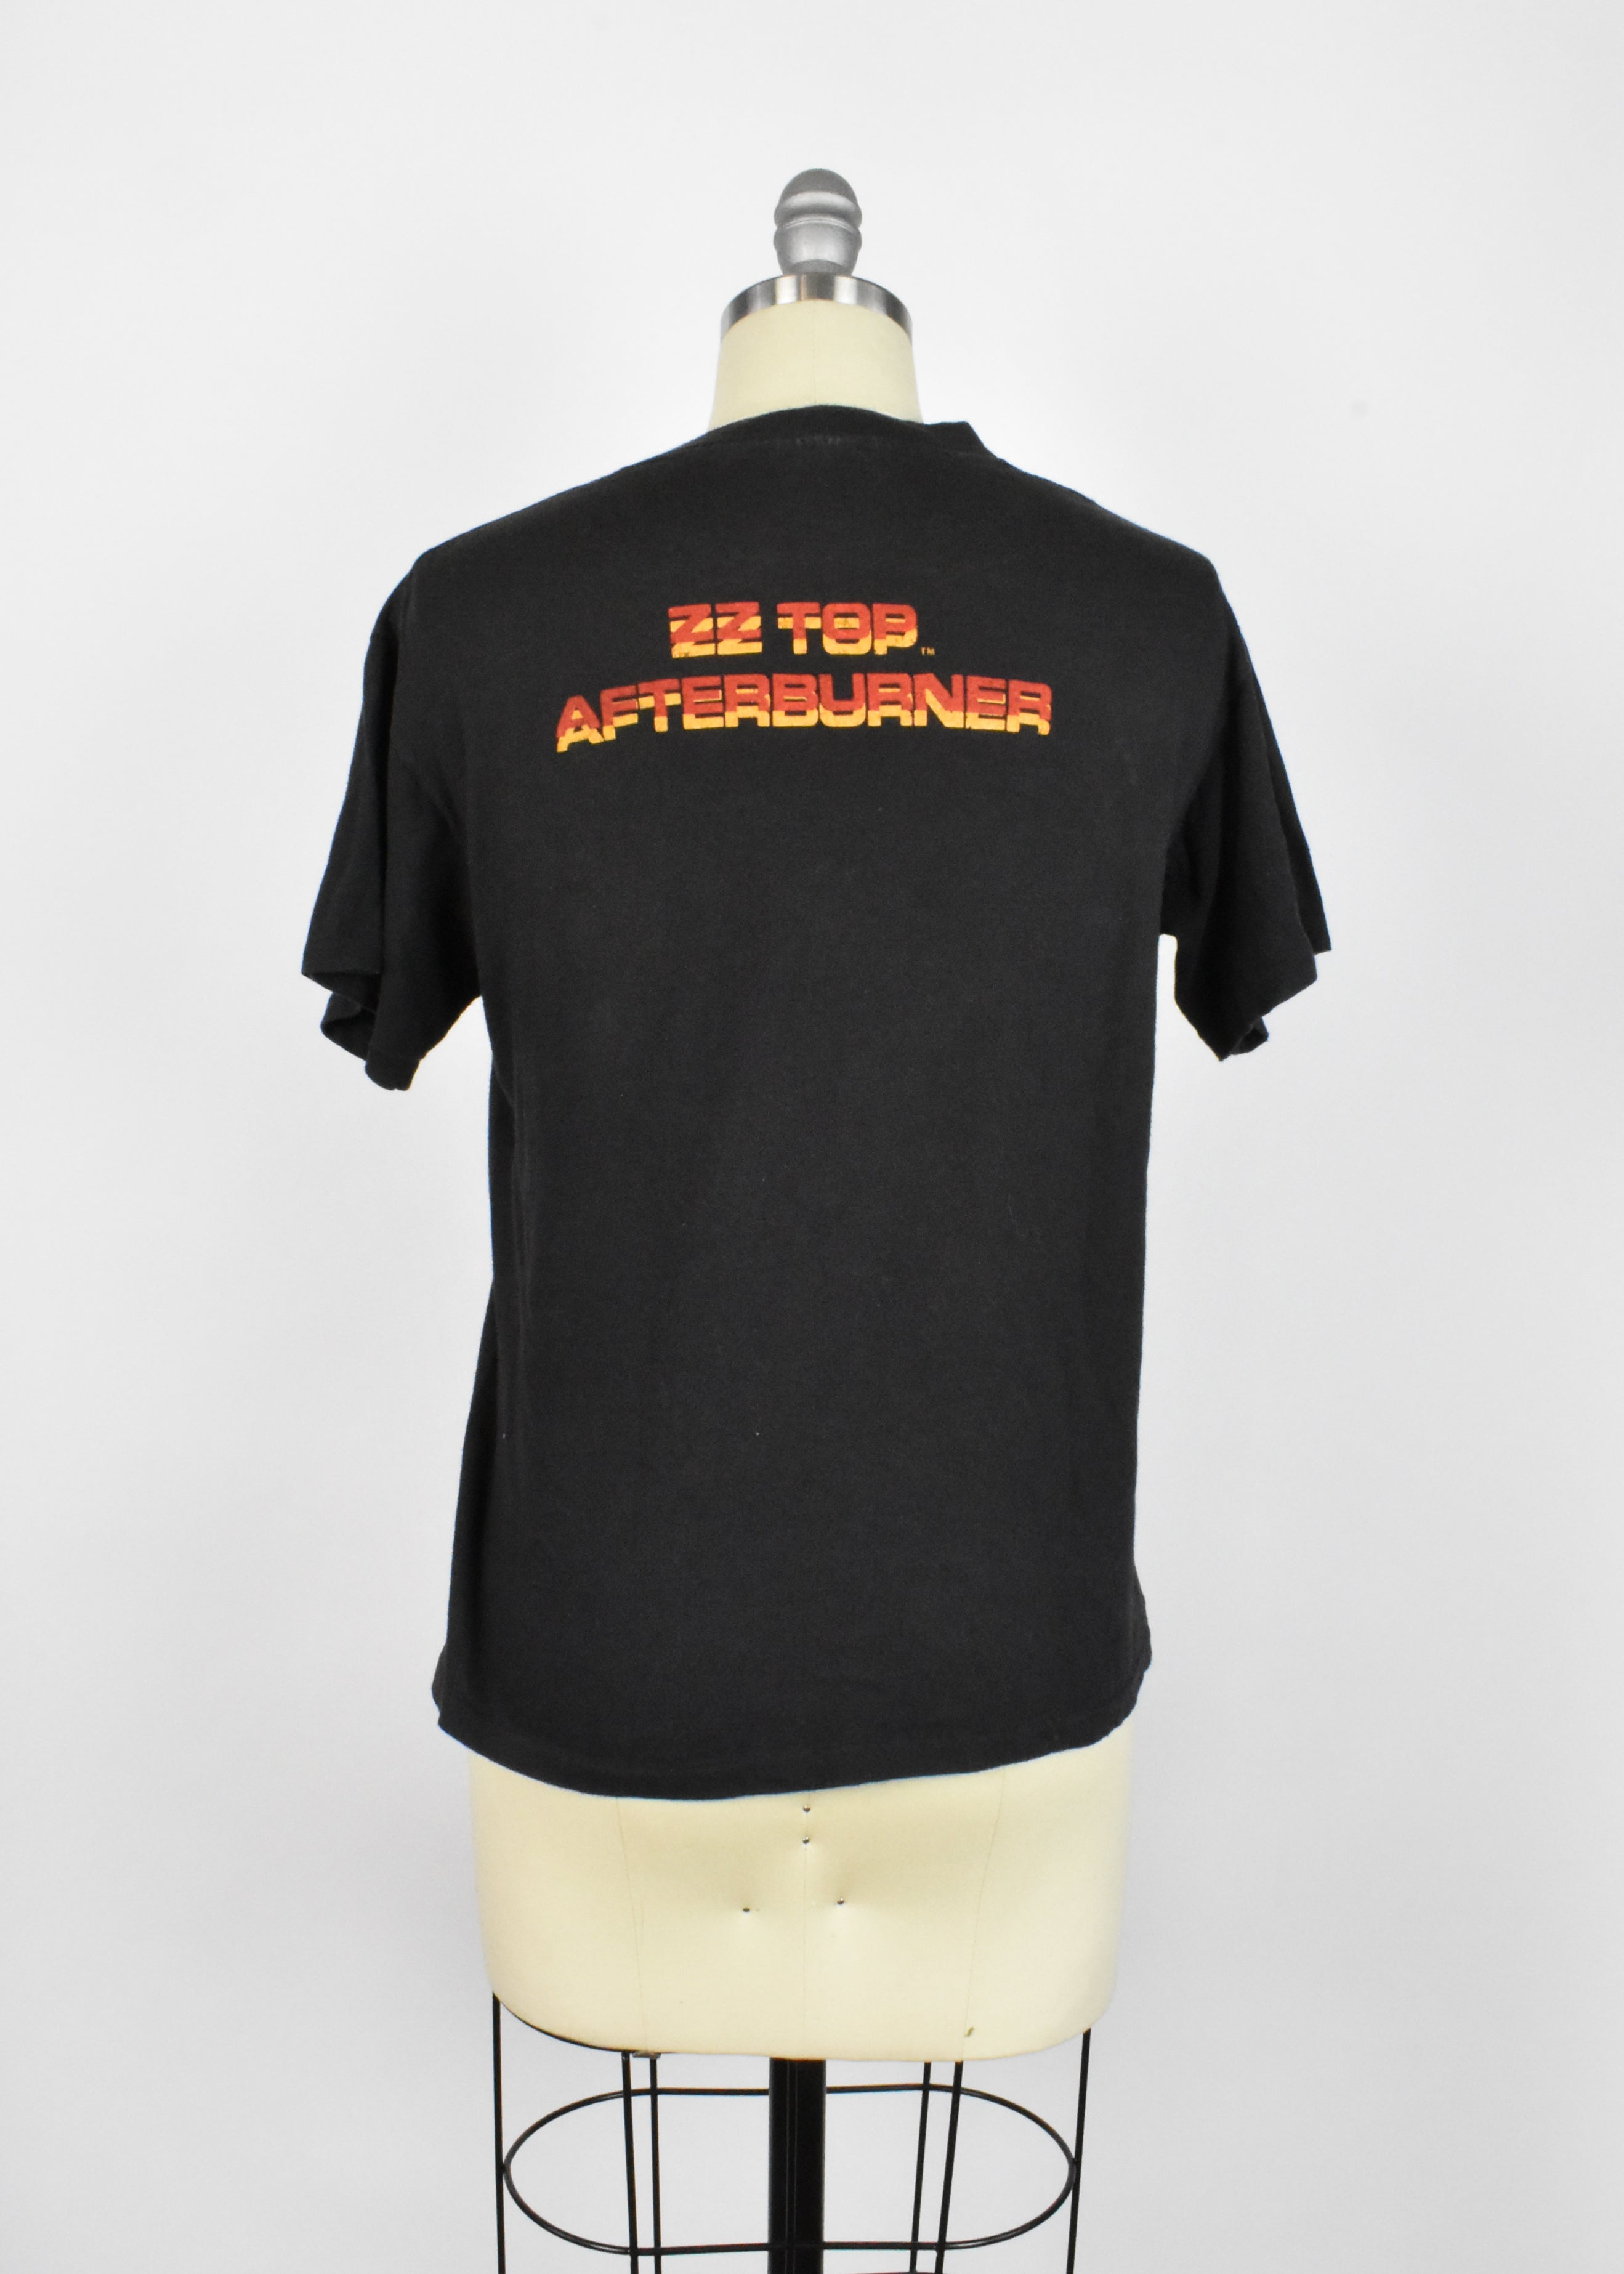 1986 ZZ Top Afterburner T-Shirt - Spring Ford Label